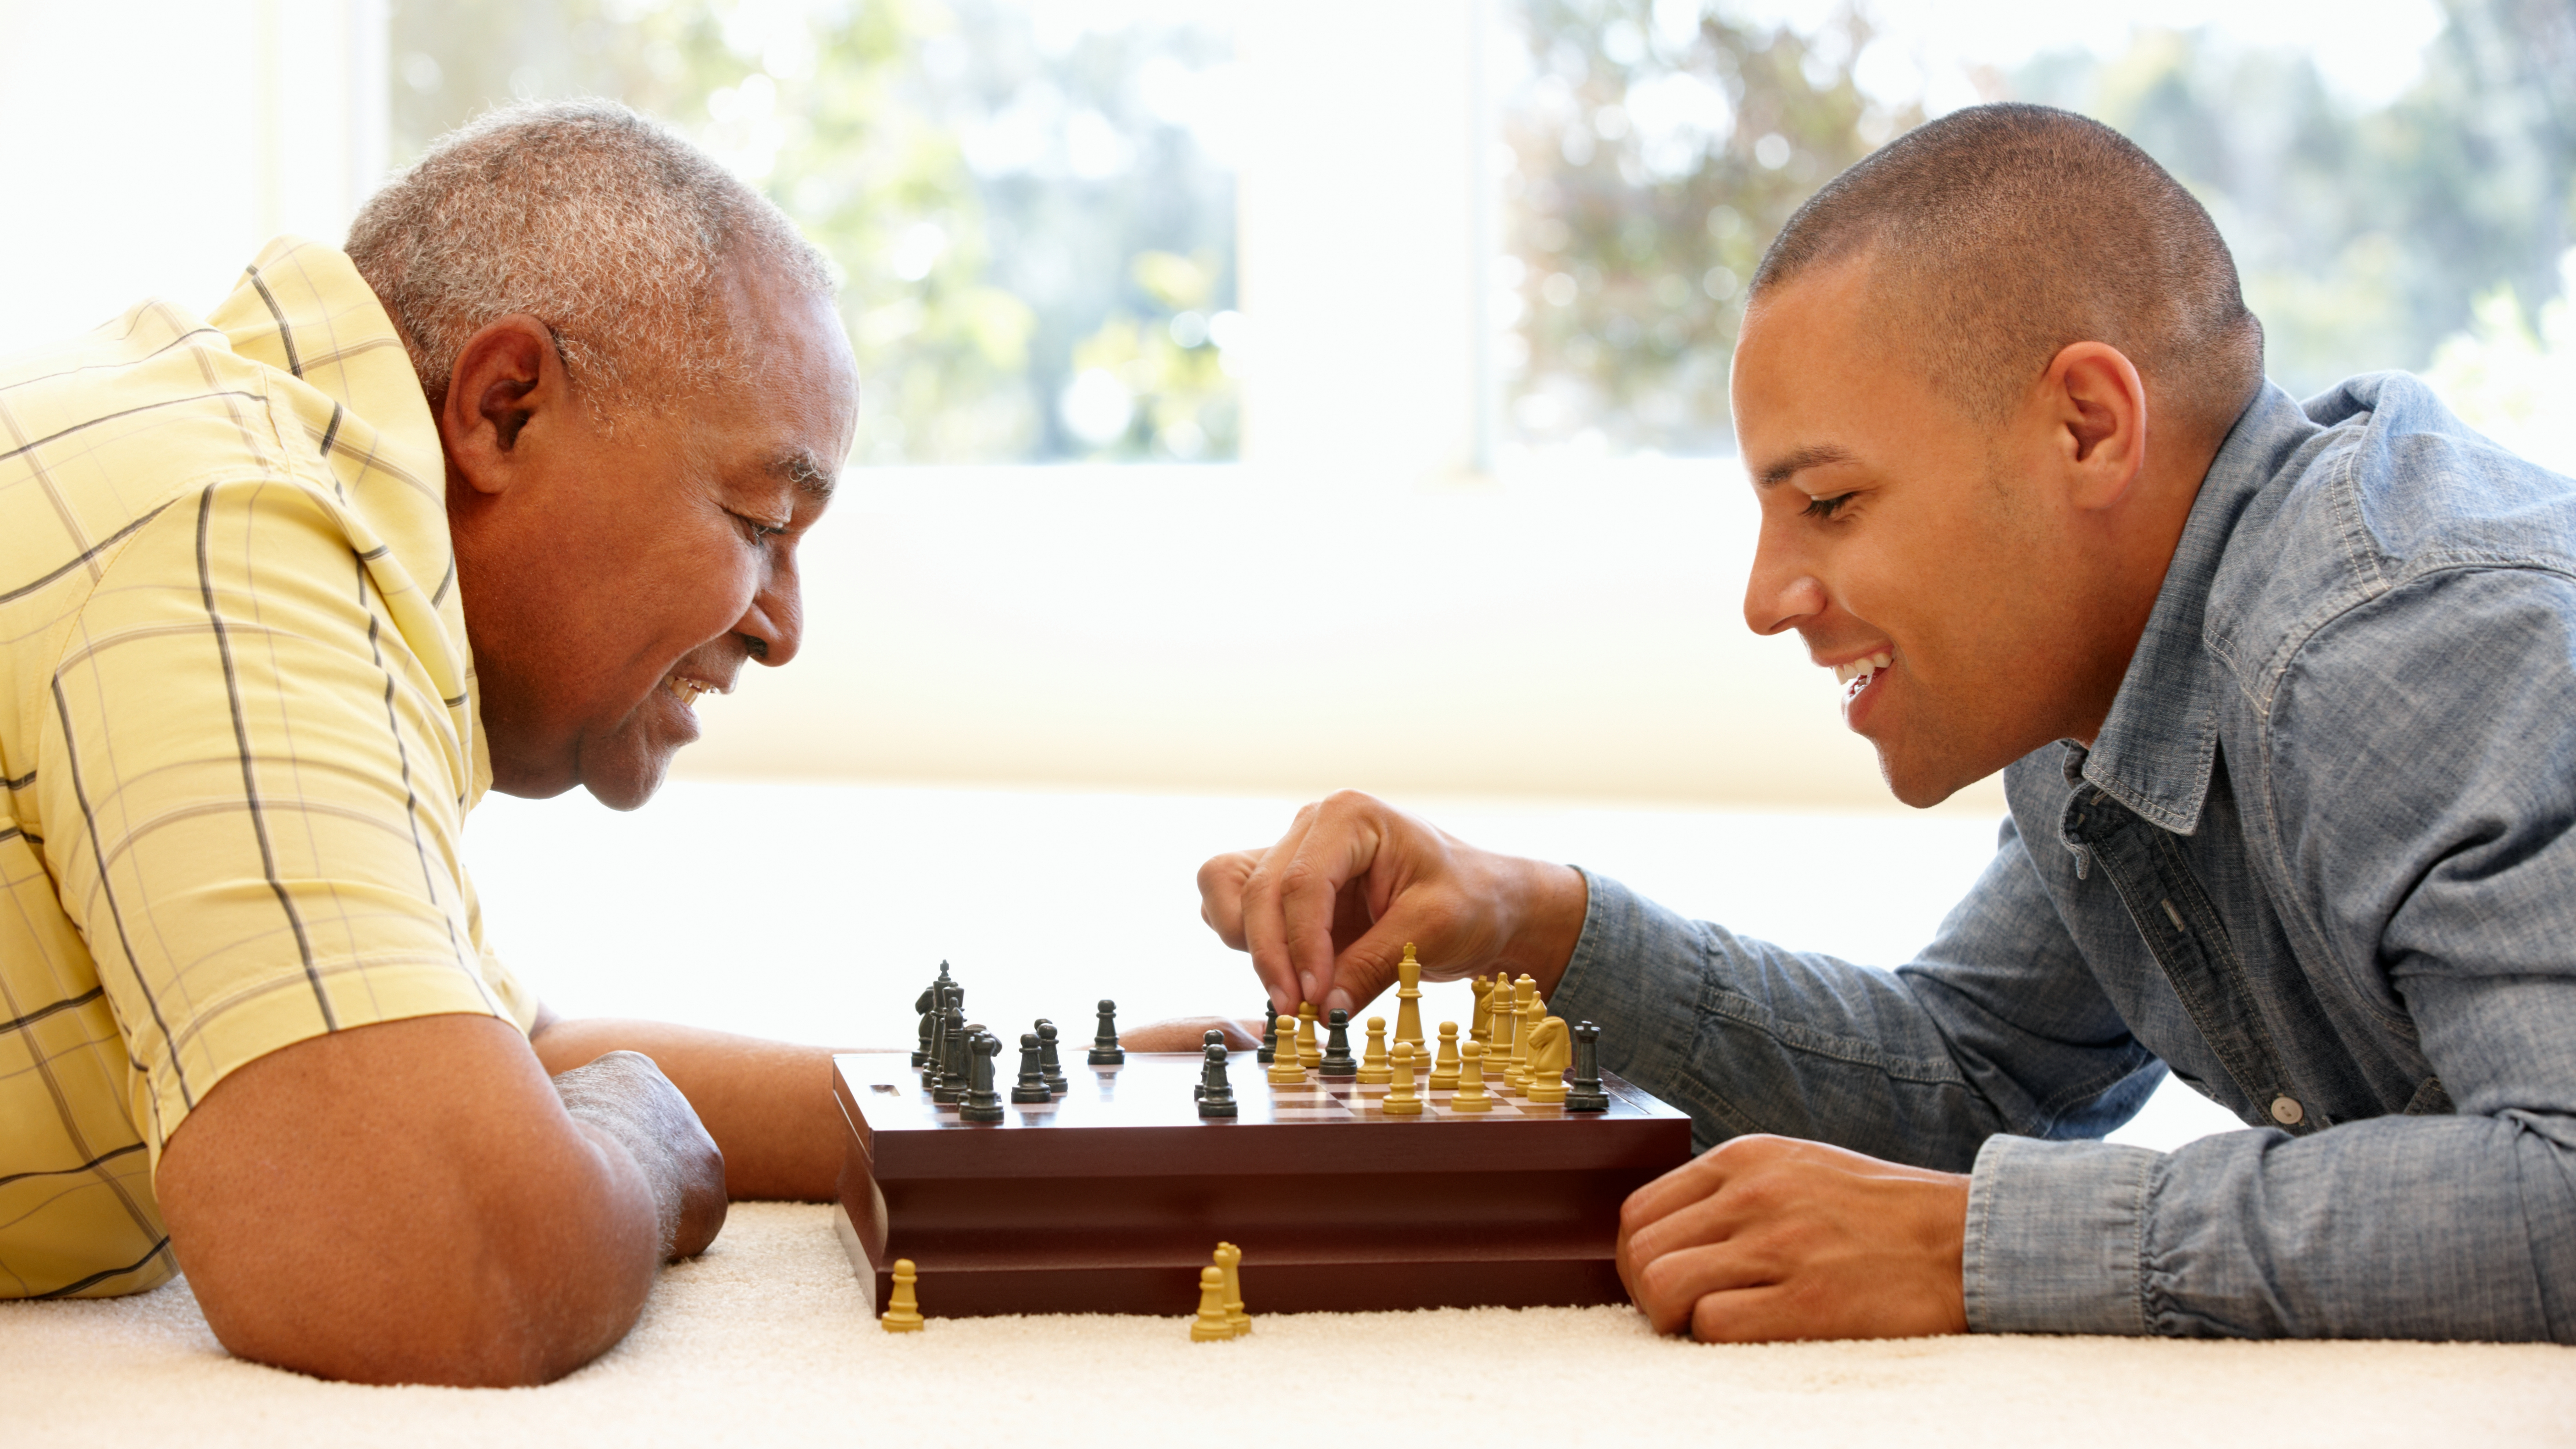 sitting by a window and smiling, an older man having fun and playing the game of chess with a younger man